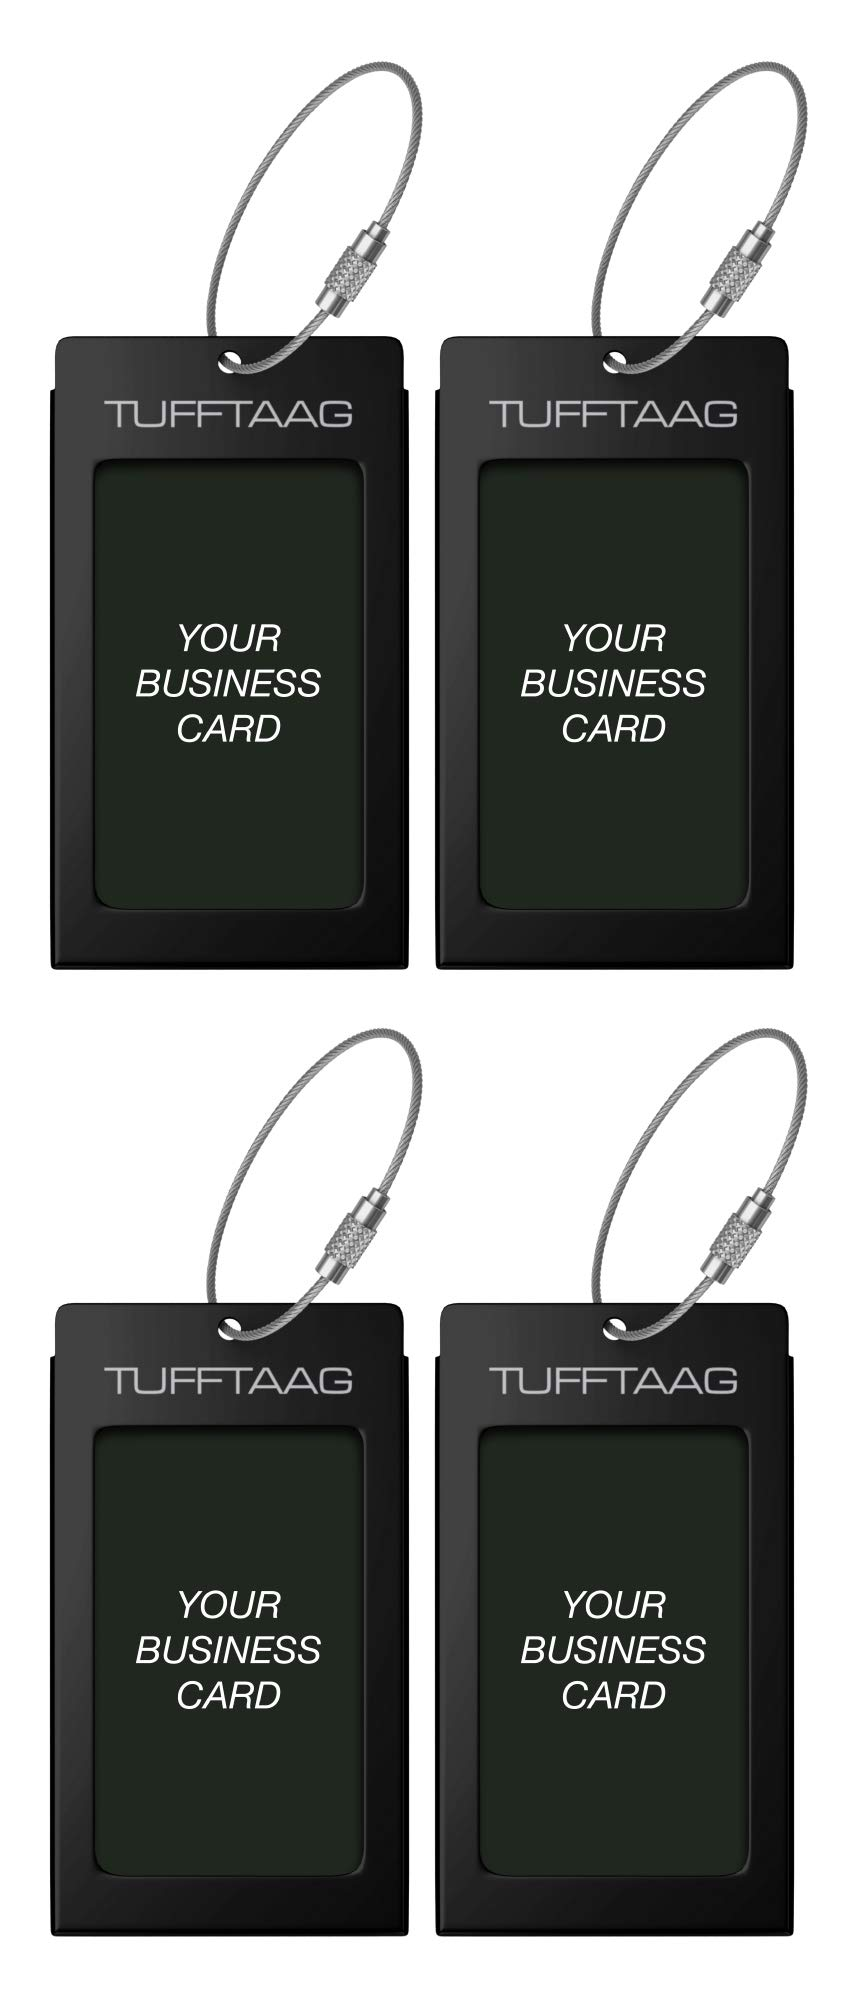 Luggage Tags TUFFTAAG for Business Cards, Metal Suitcase Labels, 4 Pack Bundle (4 Black)